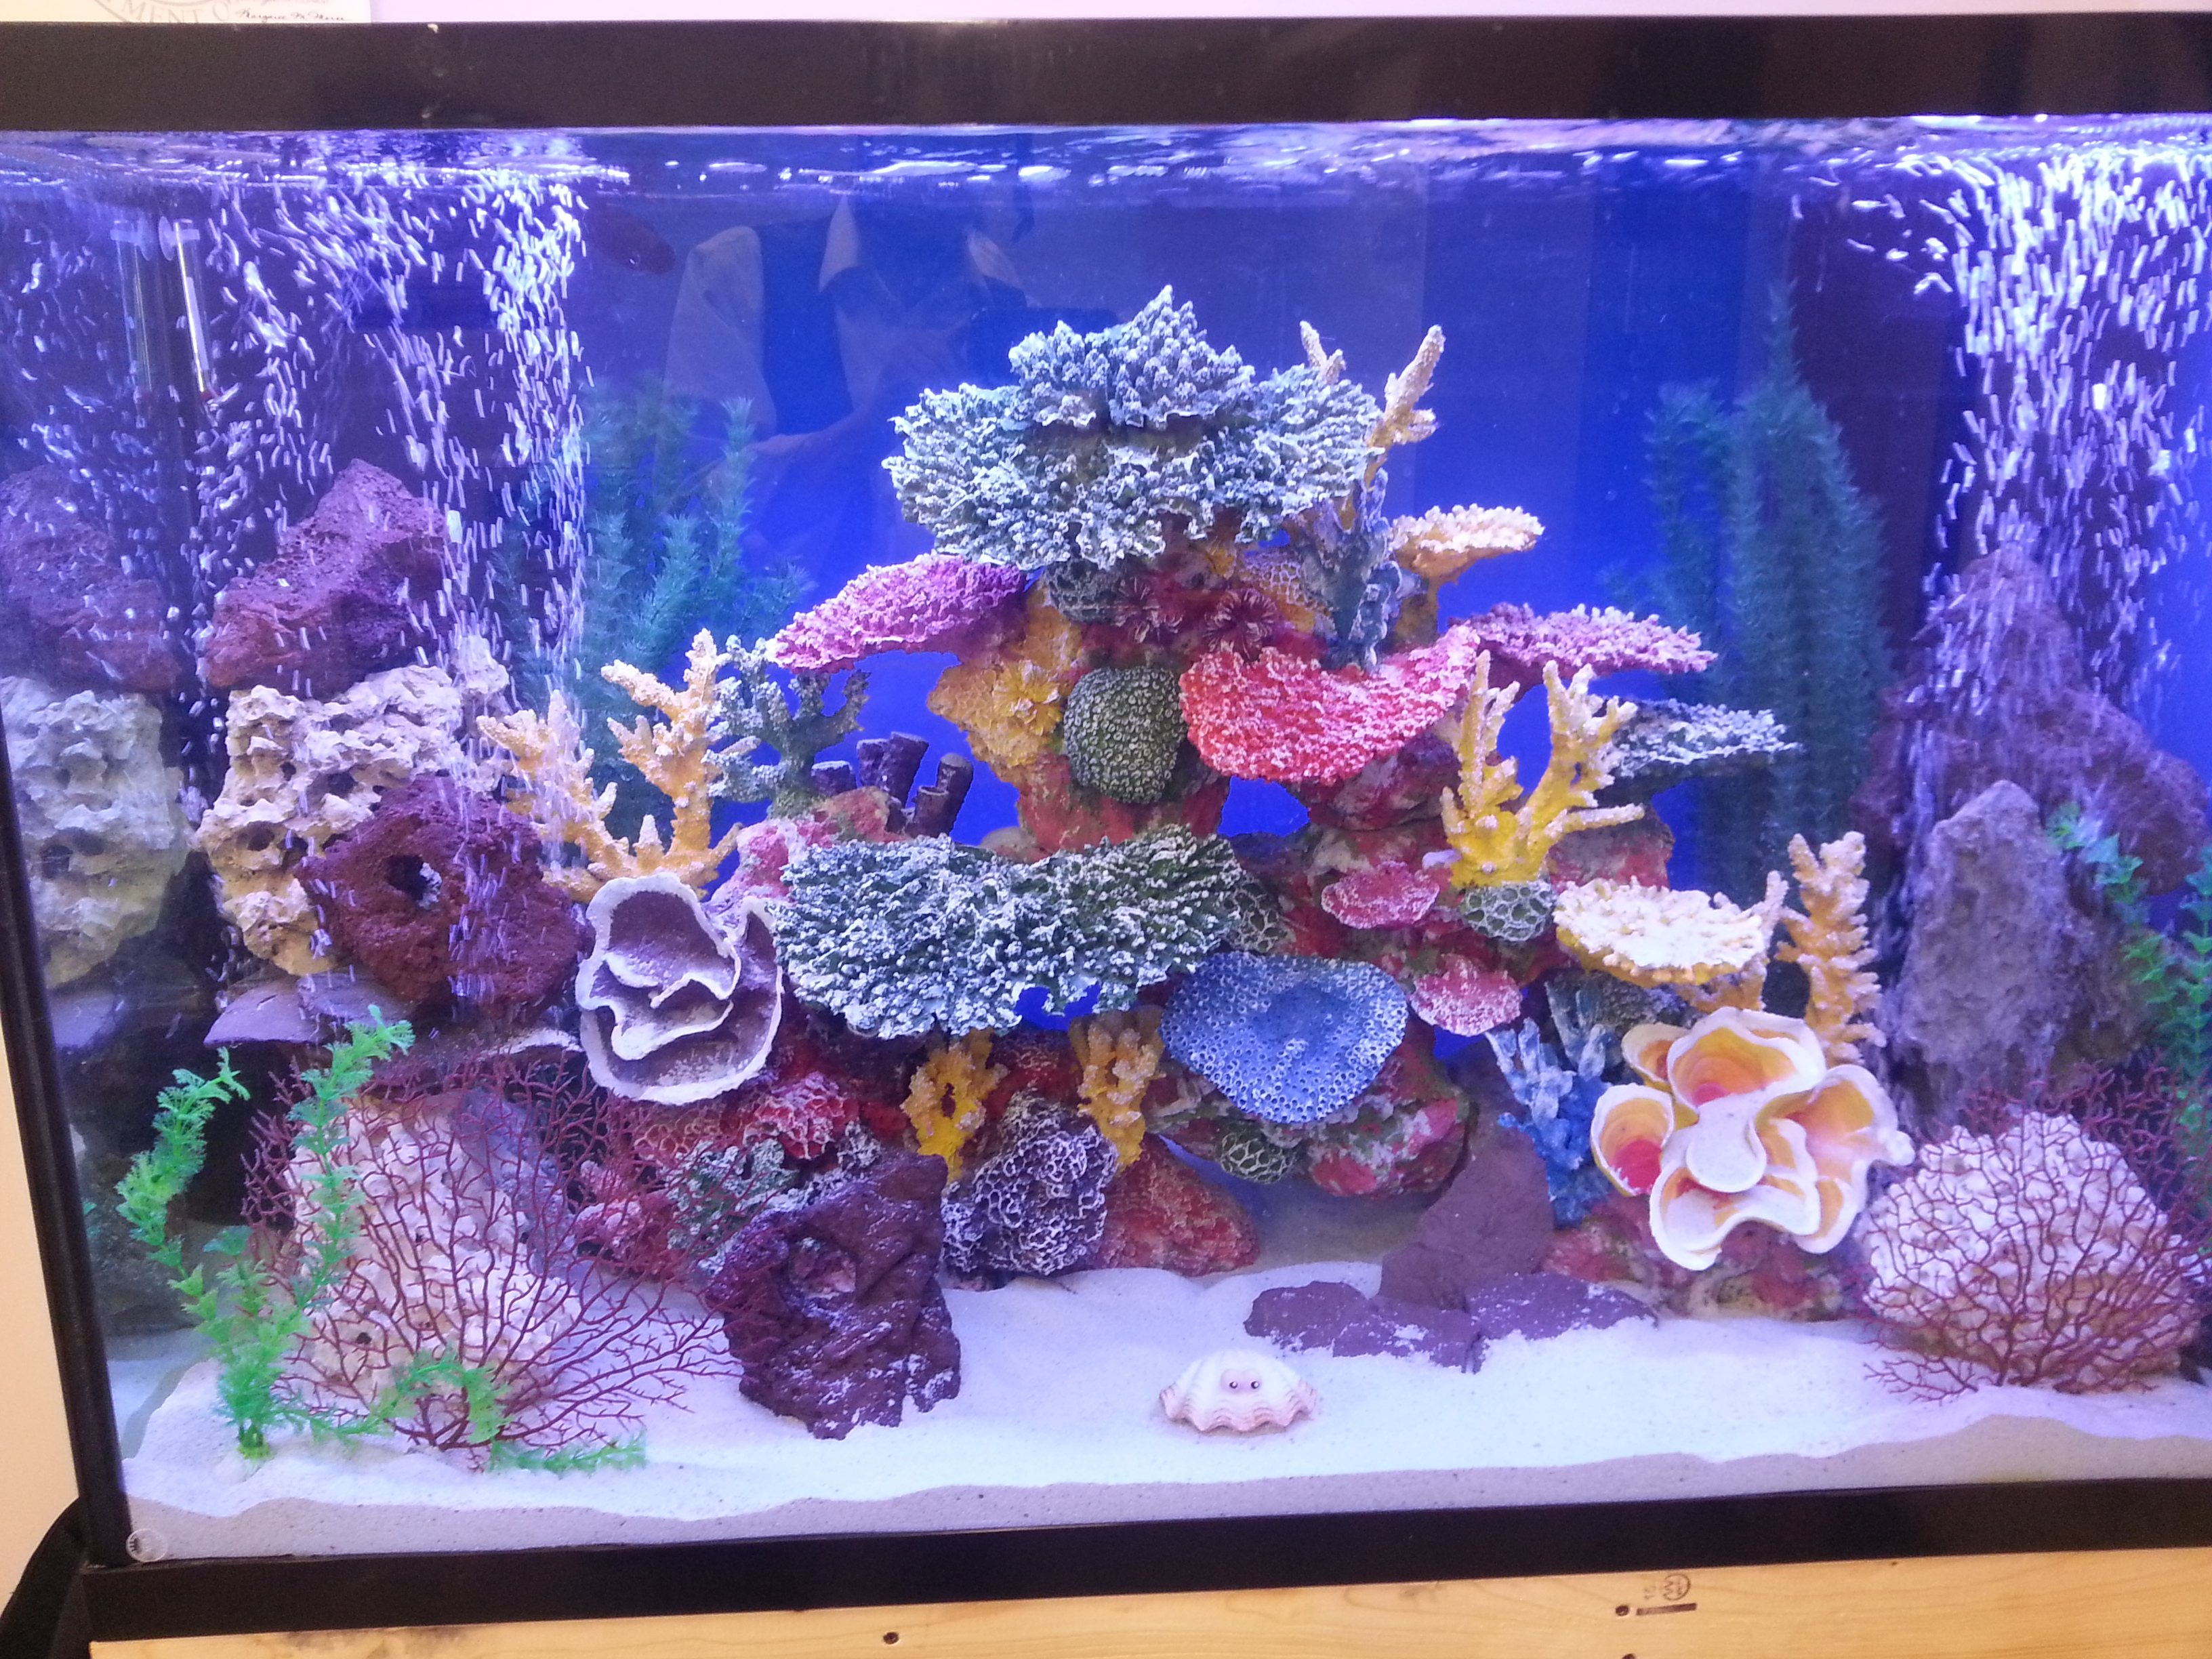 Home kings fish tank for Artificial coral reef aquarium decoration inserts